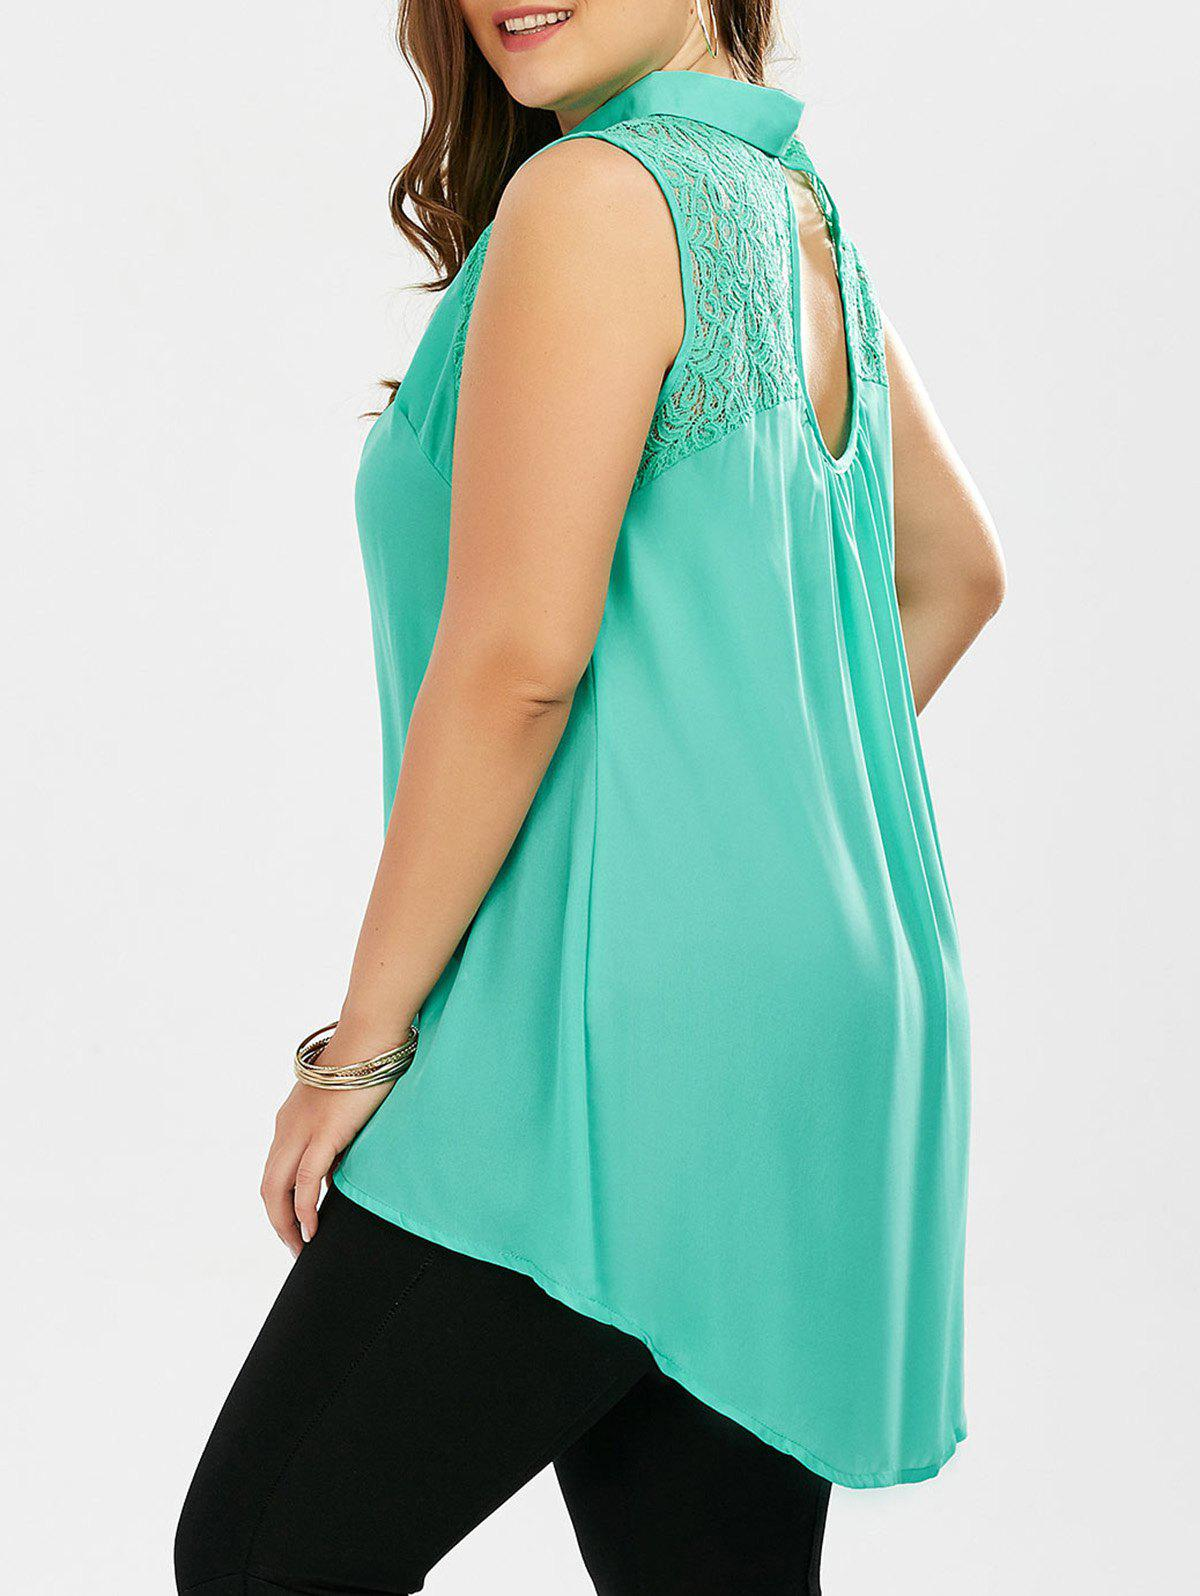 Plus Size Chiffon Sleeveless Button Up ShirtWOMEN<br><br>Size: 6XL; Color: LAKE GREEN; Material: Cotton Blends,Polyester; Fabric Type: Chiffon; Shirt Length: Long; Sleeve Length: Sleeveless; Collar: Shirt Collar; Style: Fashion; Season: Spring,Summer; Embellishment: Lace; Pattern Type: Solid; Weight: 0.1600kg; Package Contents: 1 x Shirt;